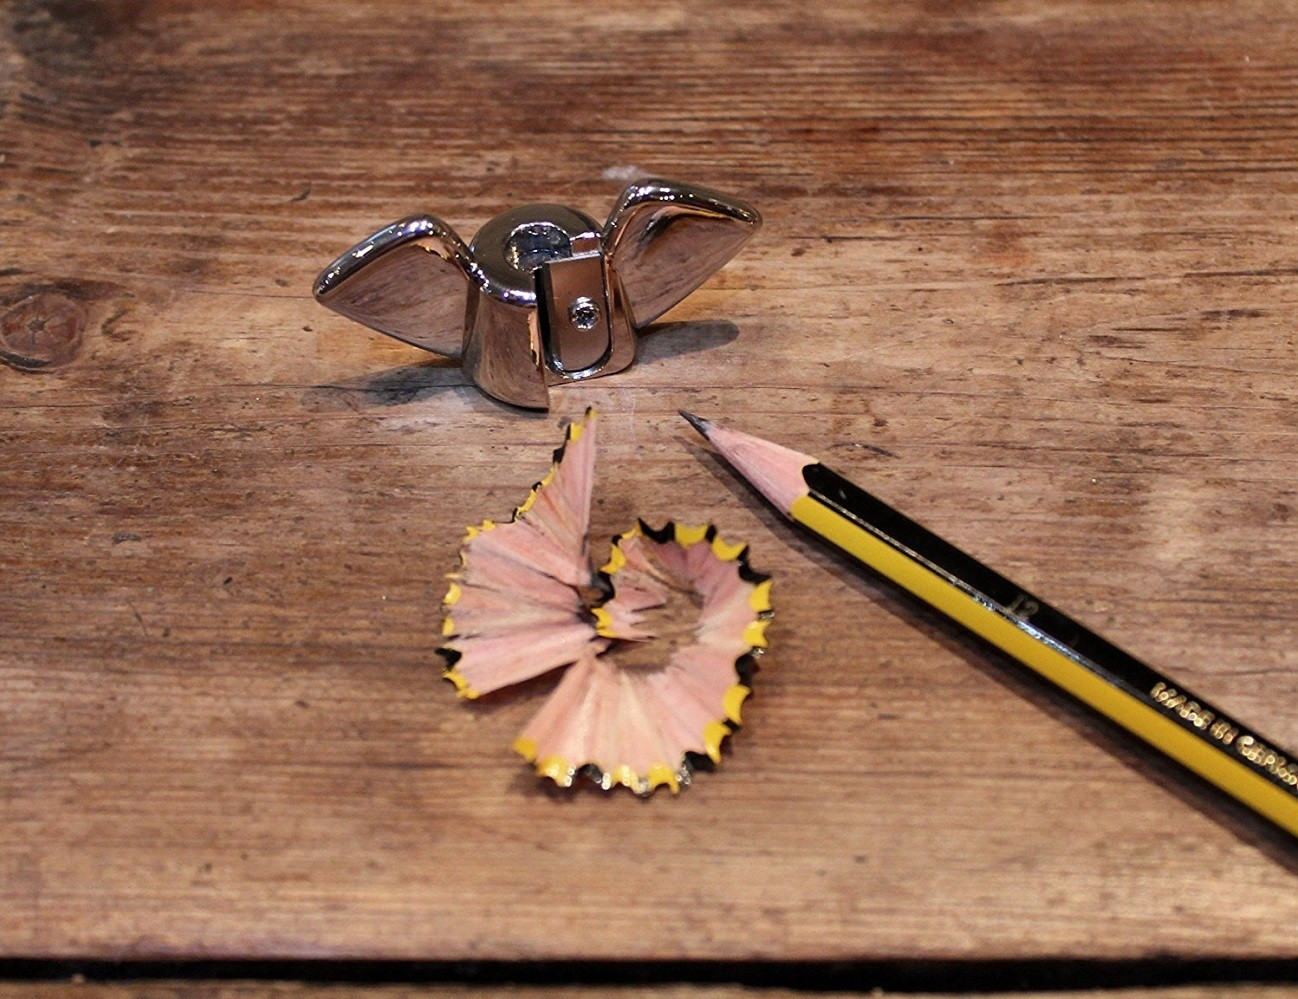 Wing Nut Design Pencil Sharpener by SUCK UK